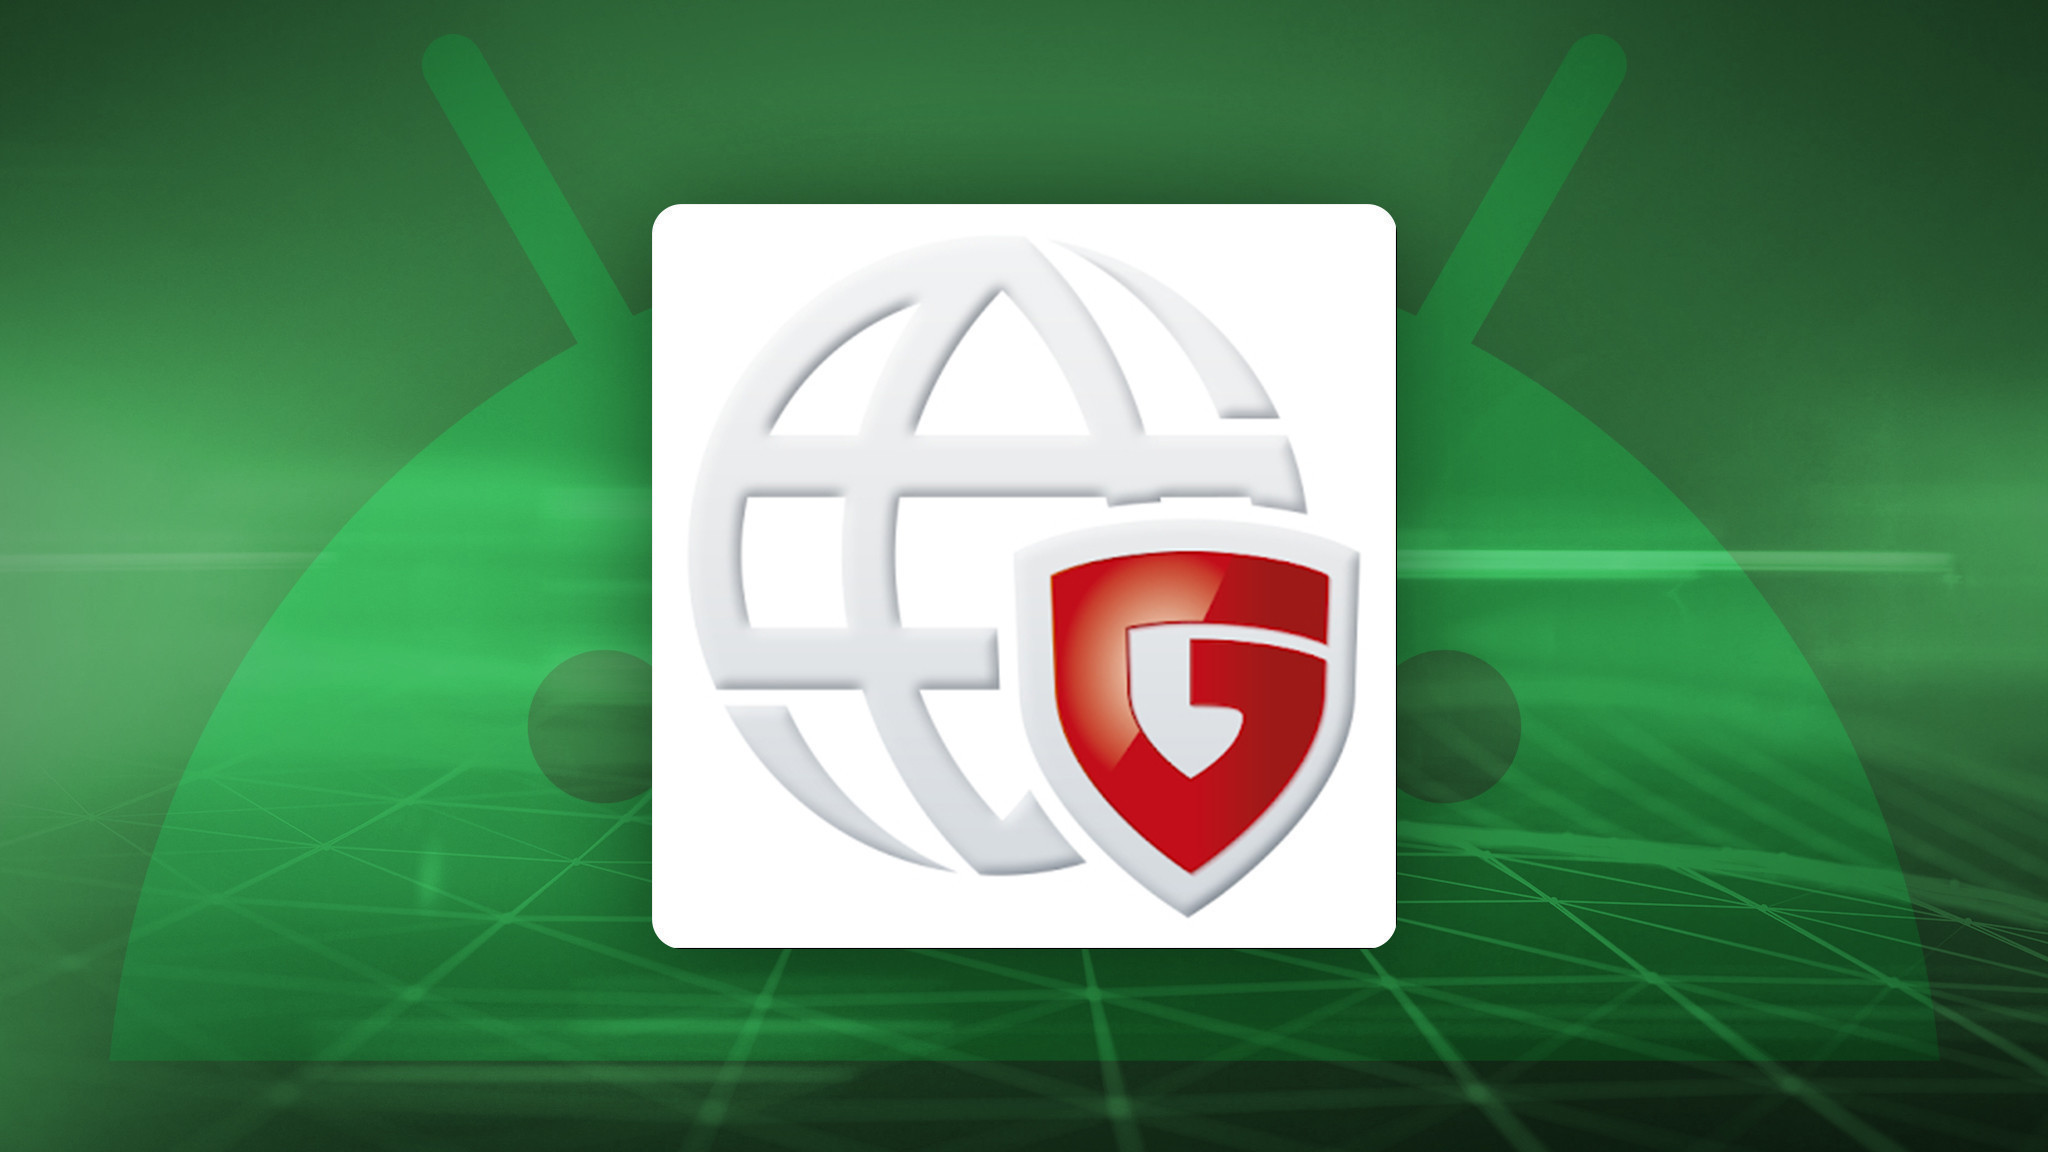 G Data Mobile Security © Android, iStock.com/blackdovfx, G Data